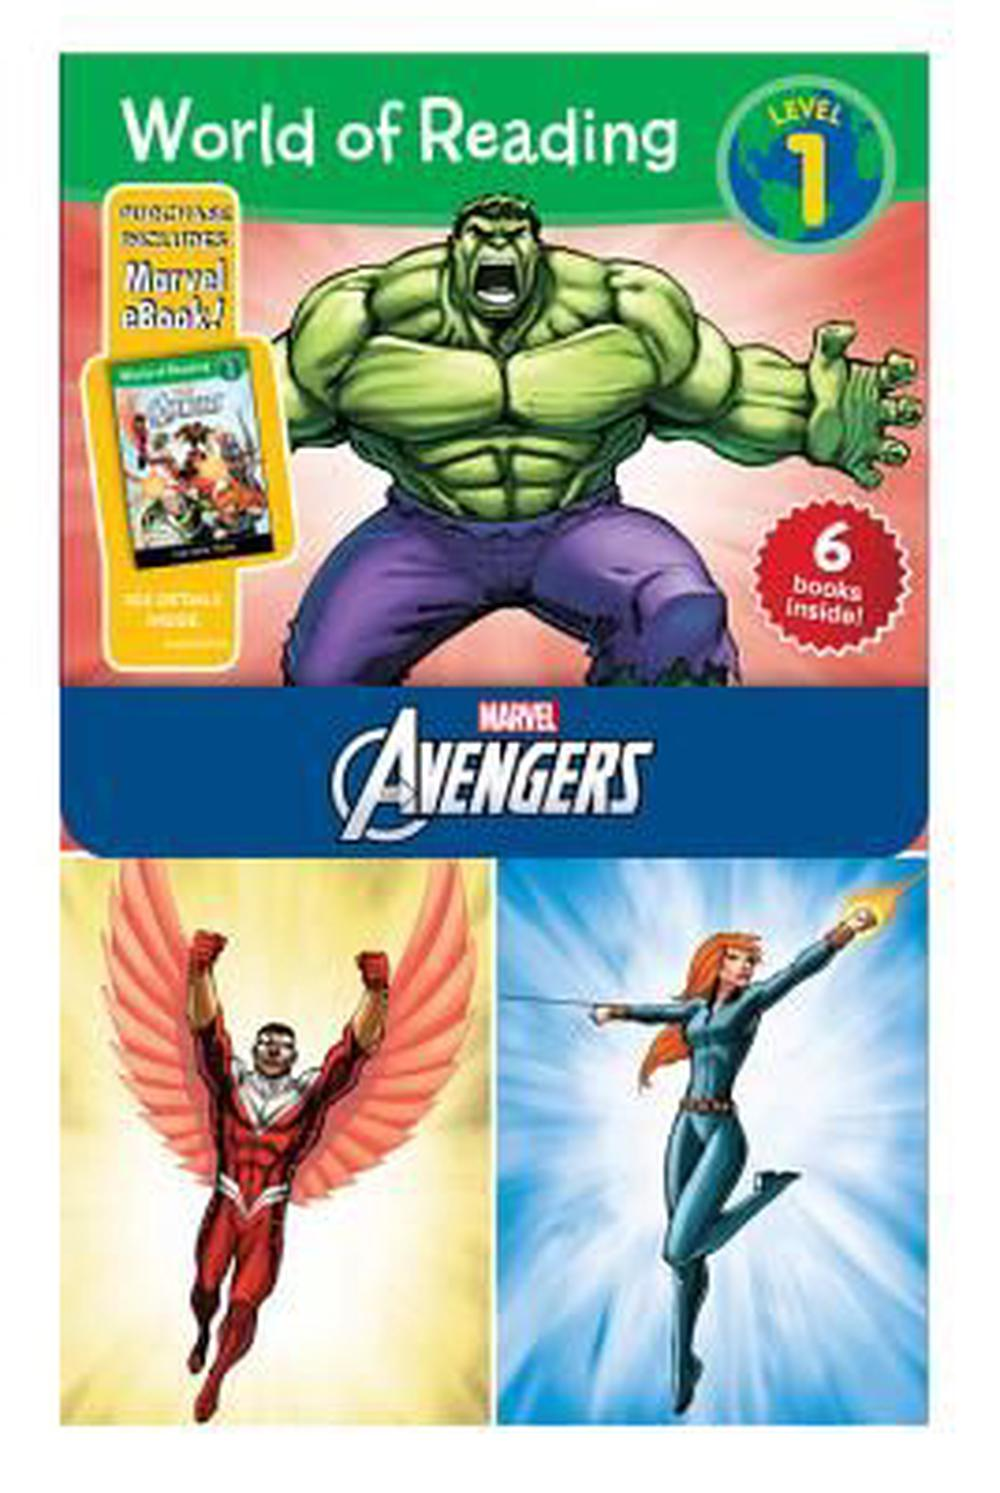 World of Reading Avengers Boxed Set: Level 1 - Purchase Includes Marvel eBook! by Disney Book Group, ISBN: 9781484704387